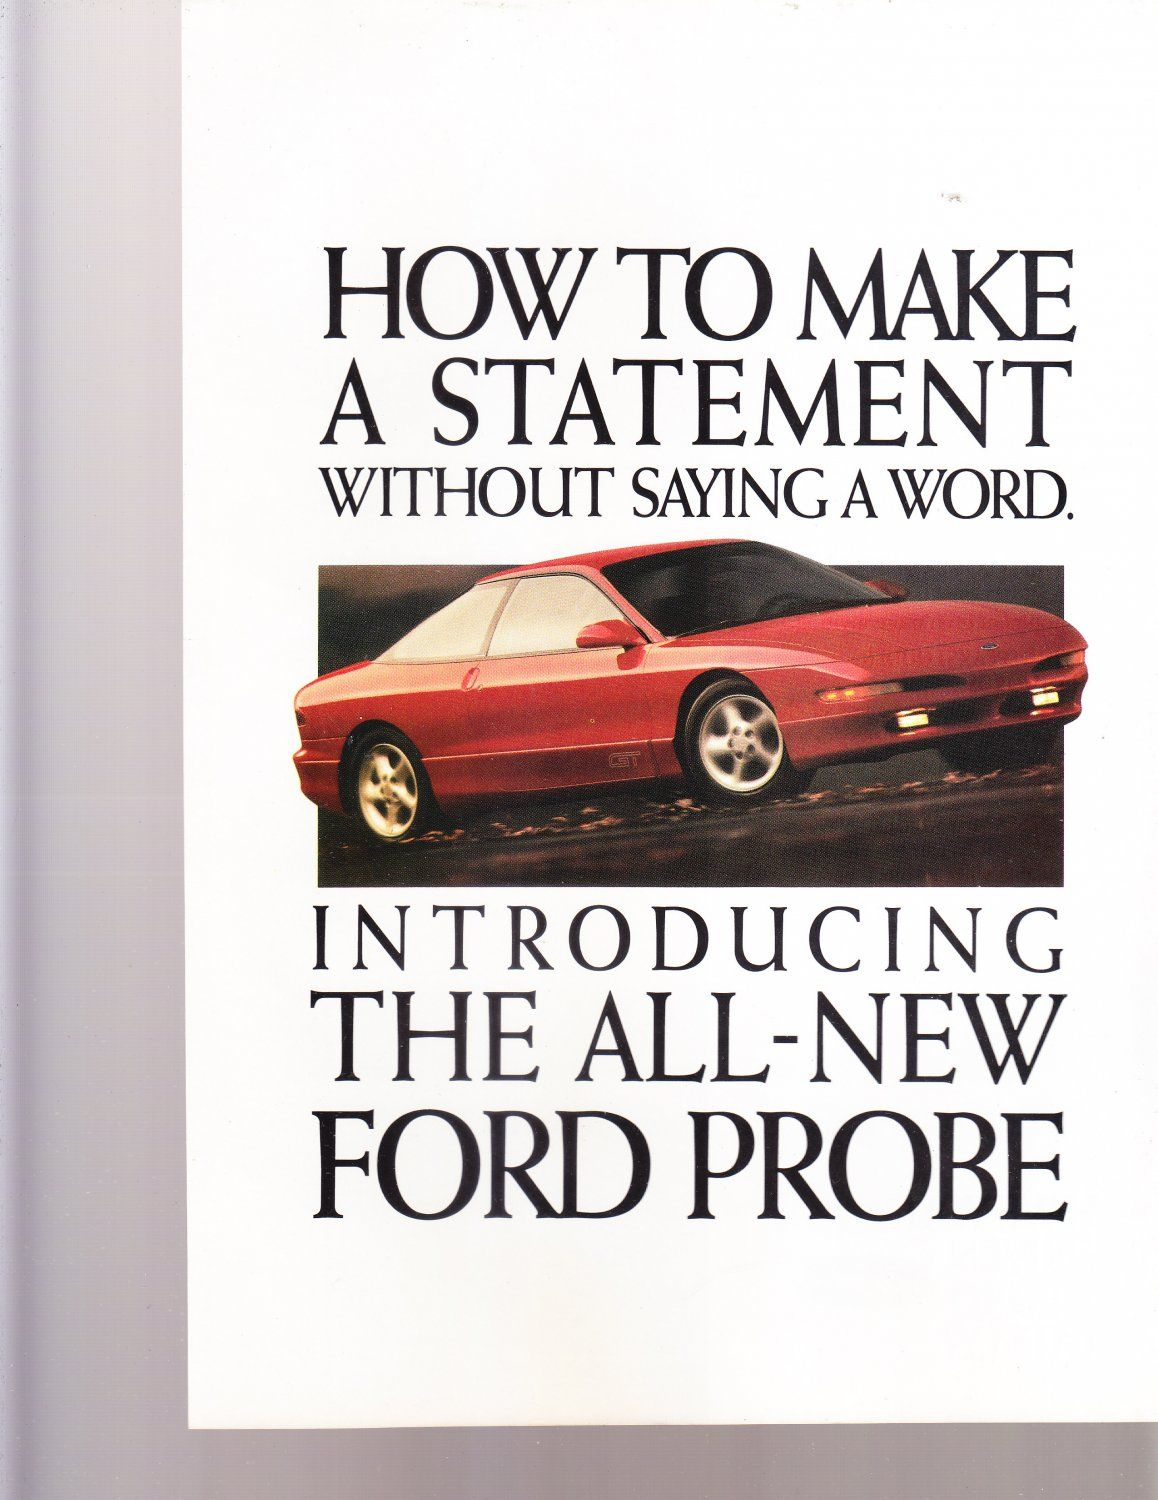 ford+probe+1992+magazine+advertisement+how+to+make+a+statement ...